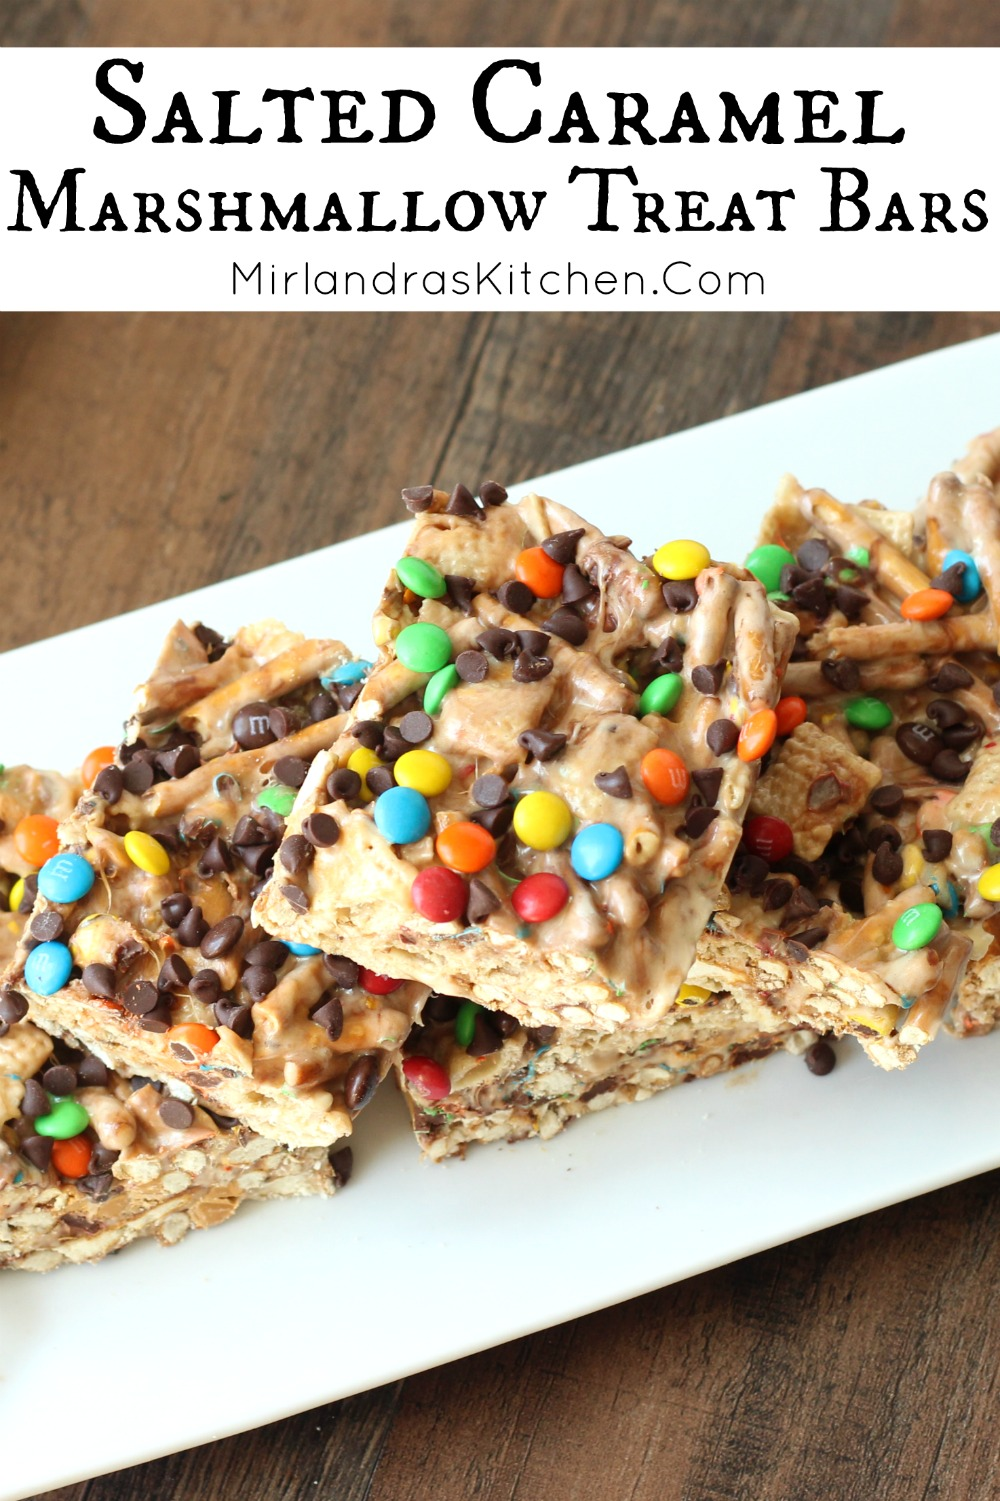 We are in love with these gooey Salted Caramel Marshmallow Treat Bars. Chocolate, pretzels, Chex, butterscotch chips,- how could you not these easy treats?